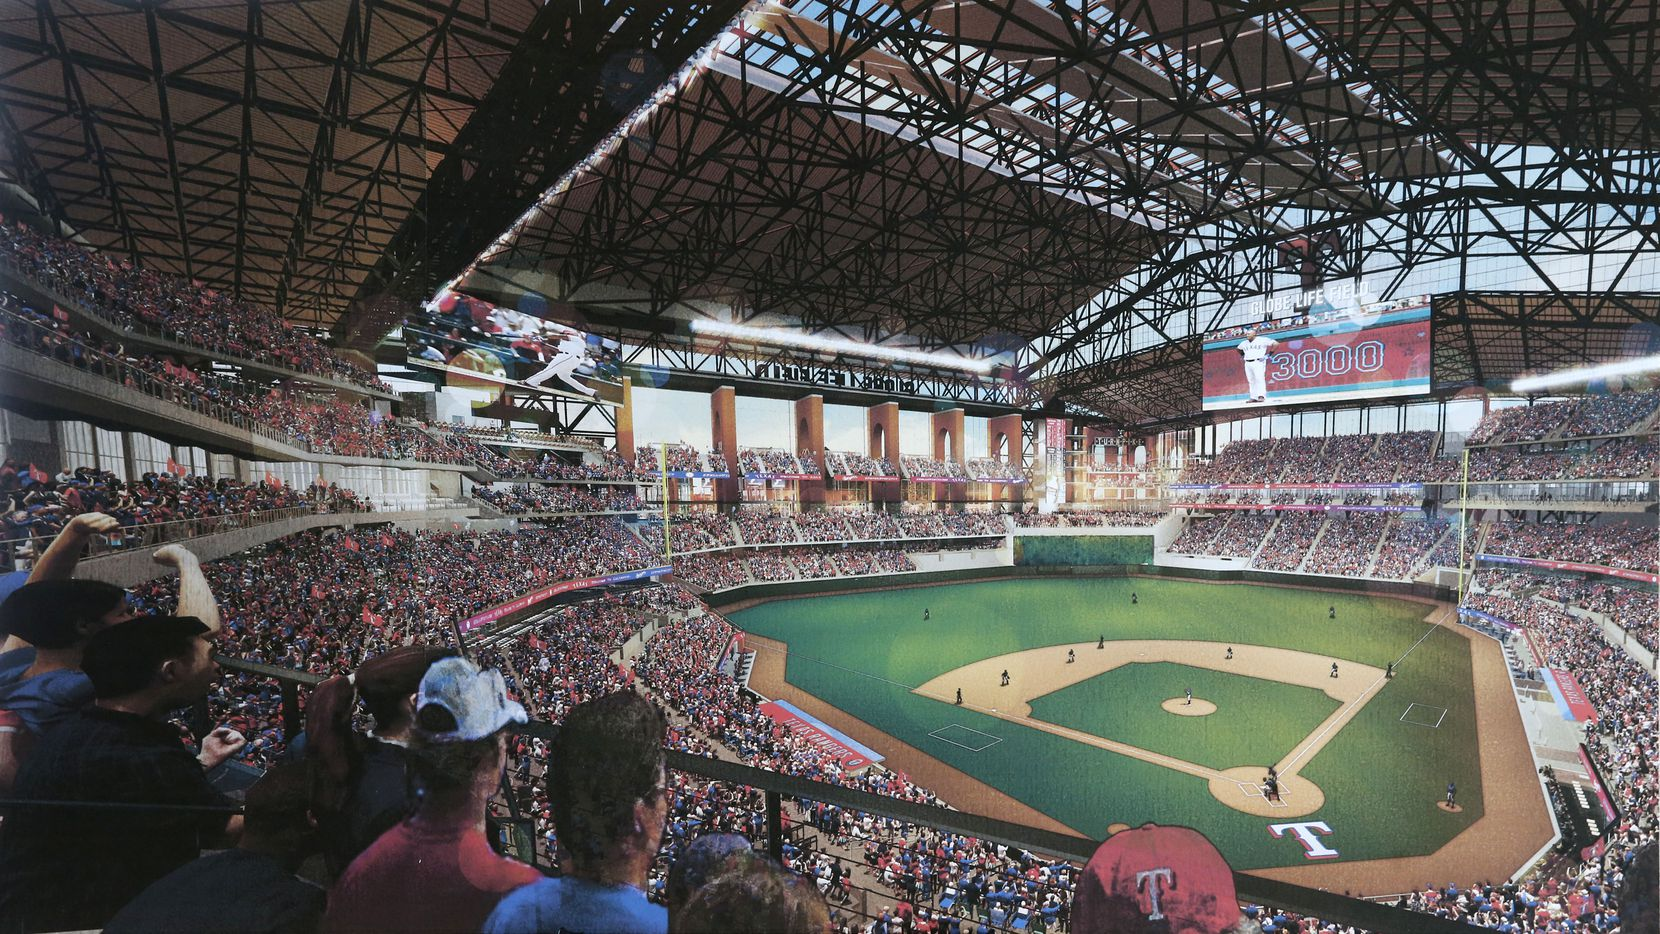 Globe Life Field renderings provided by HKS, showing the interior of the new ballpark.